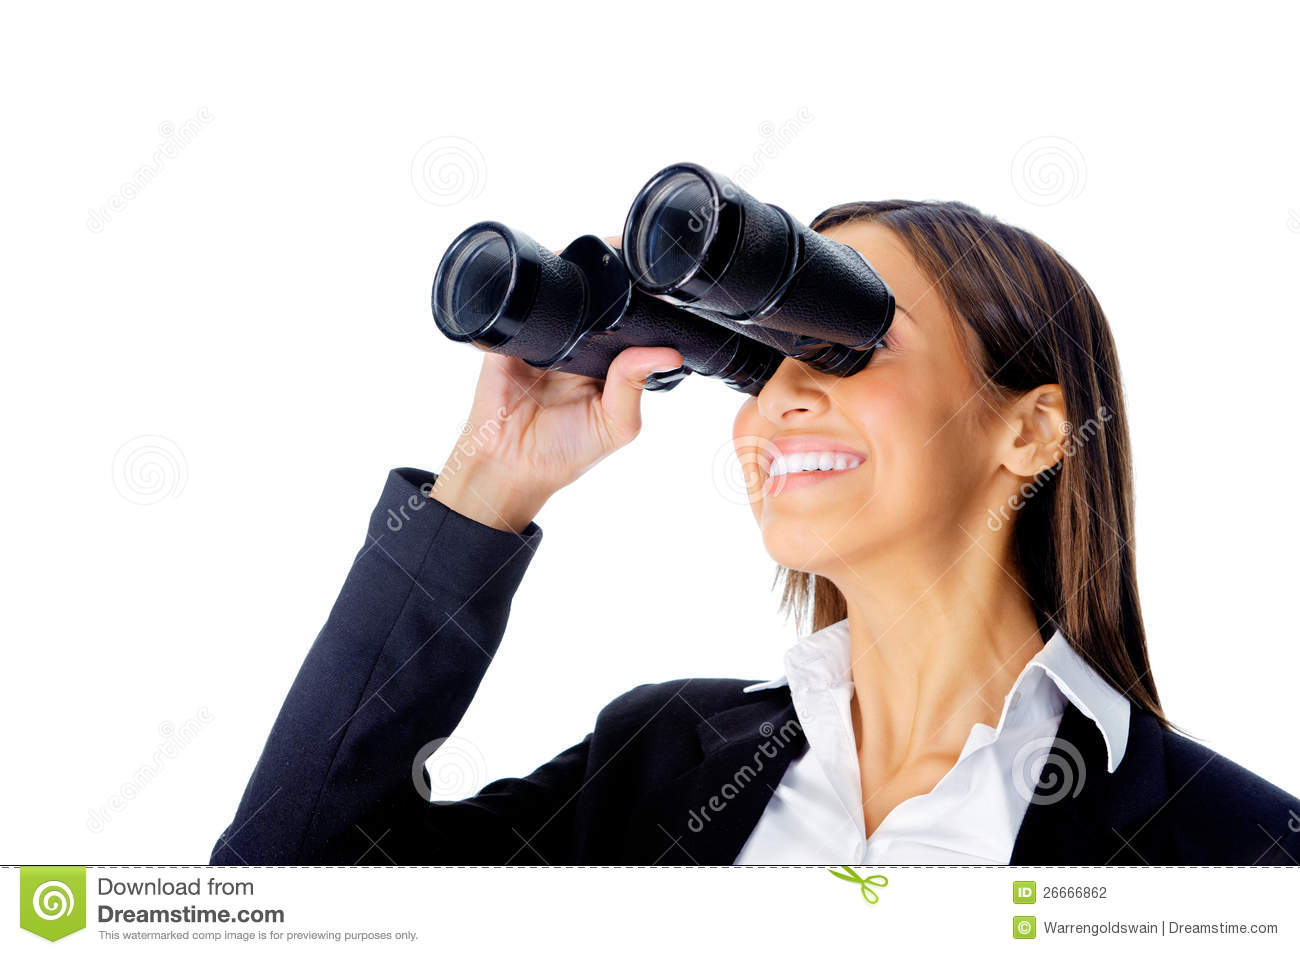 single ladies and searching with binoculars